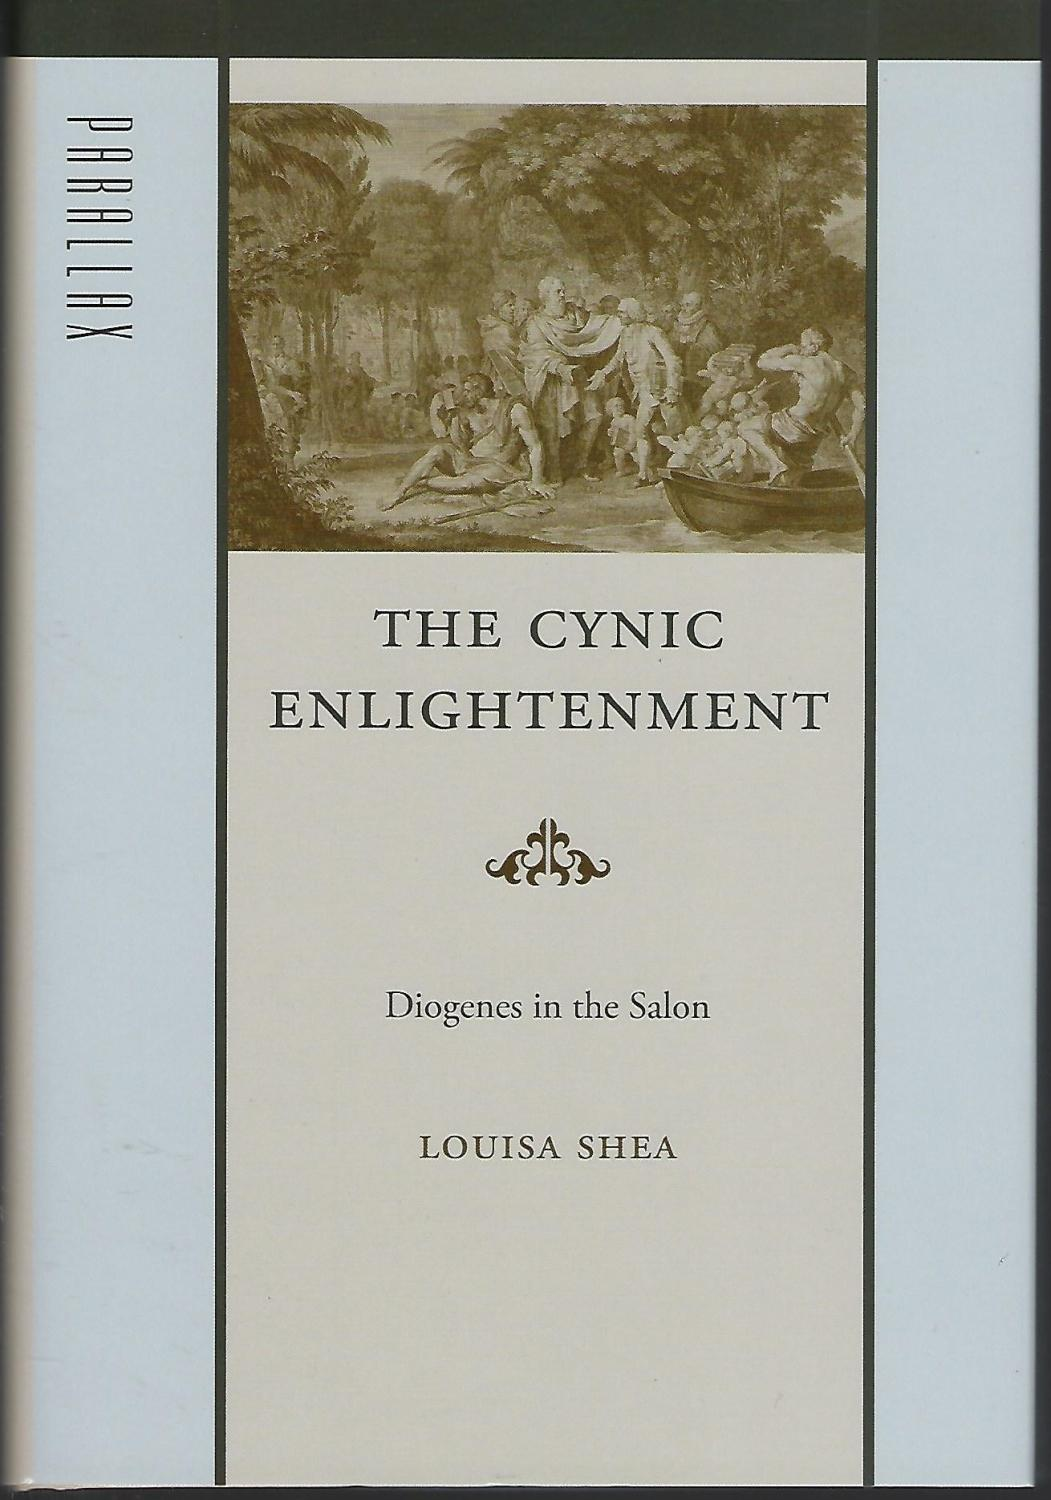 The Cynic Enlightenment: Diogenes in the Salon (Parallax: Re-visions of Culture and Society) - Shea, Louisa